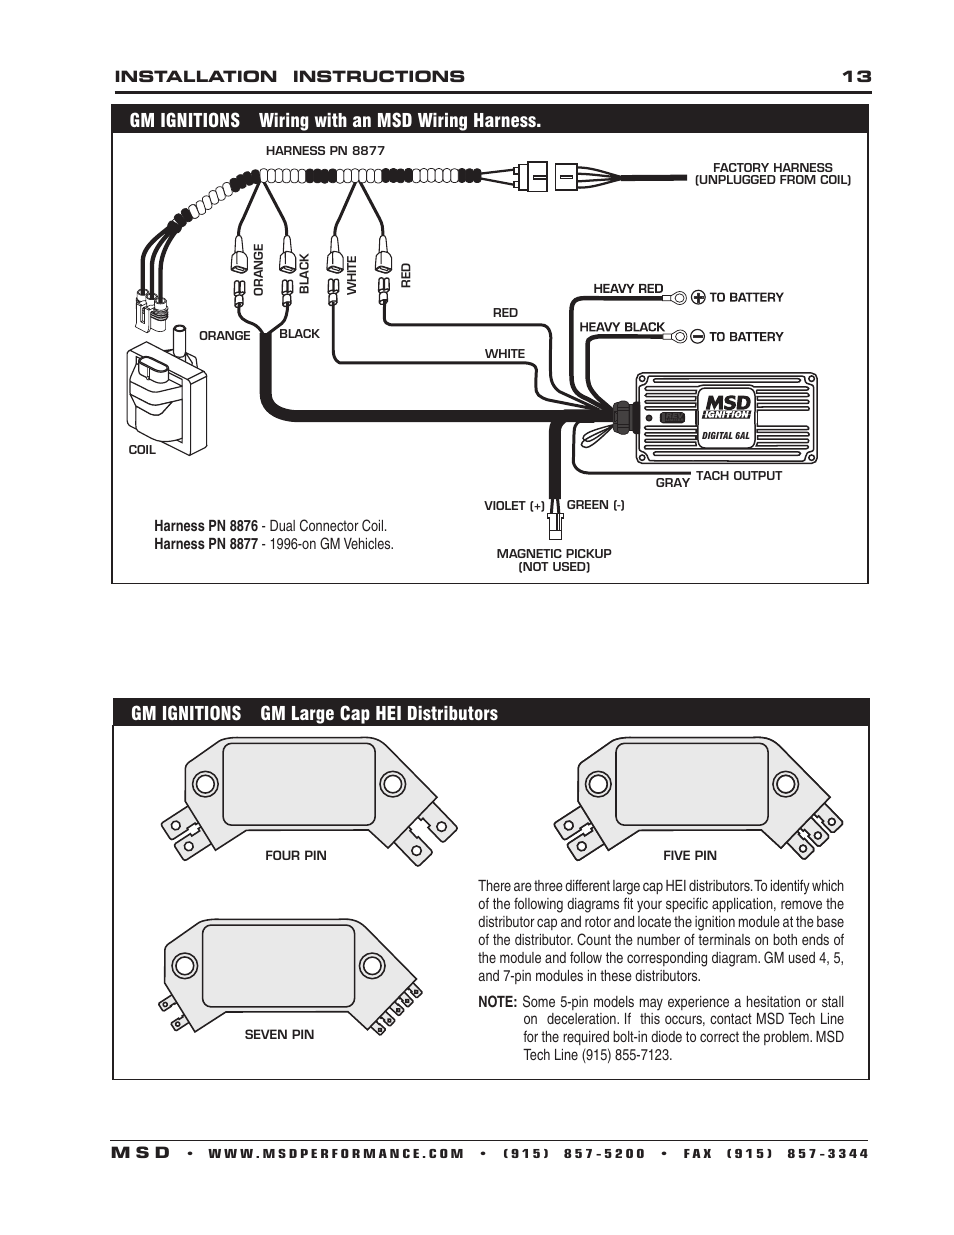 Gm ignitions    wiring    with an msd    wiring    harness  Gm ignitions gm large cap    hei    distributors   MSD